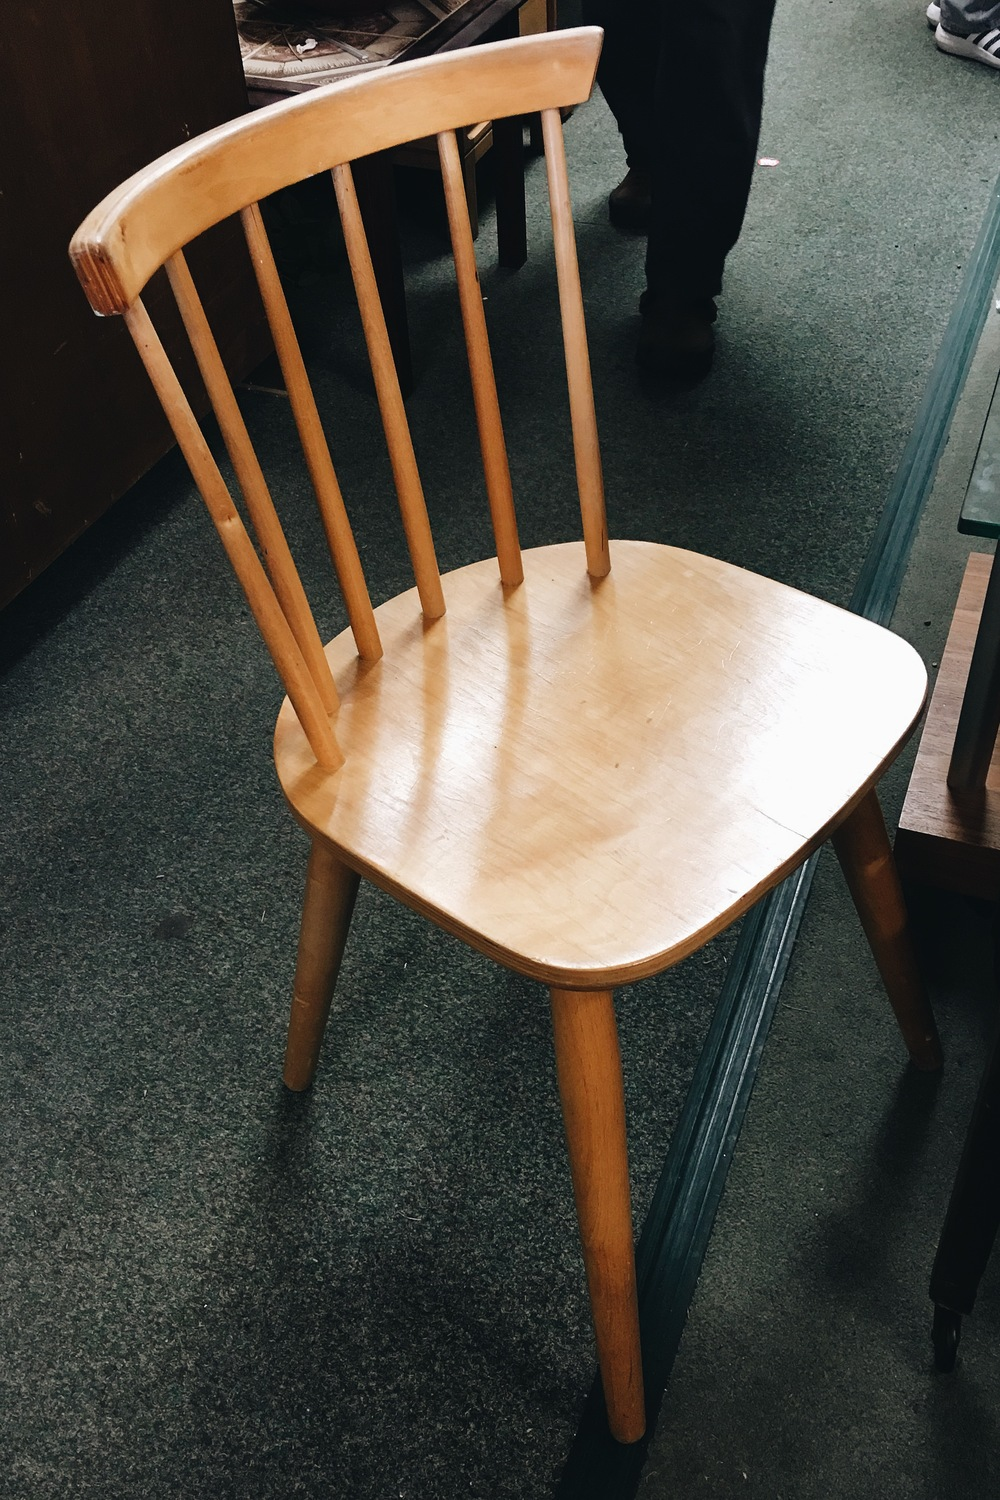 Four of these strong and sturdy ,Ercol-style wooden chairs were £10 each at Ecco last weekend.